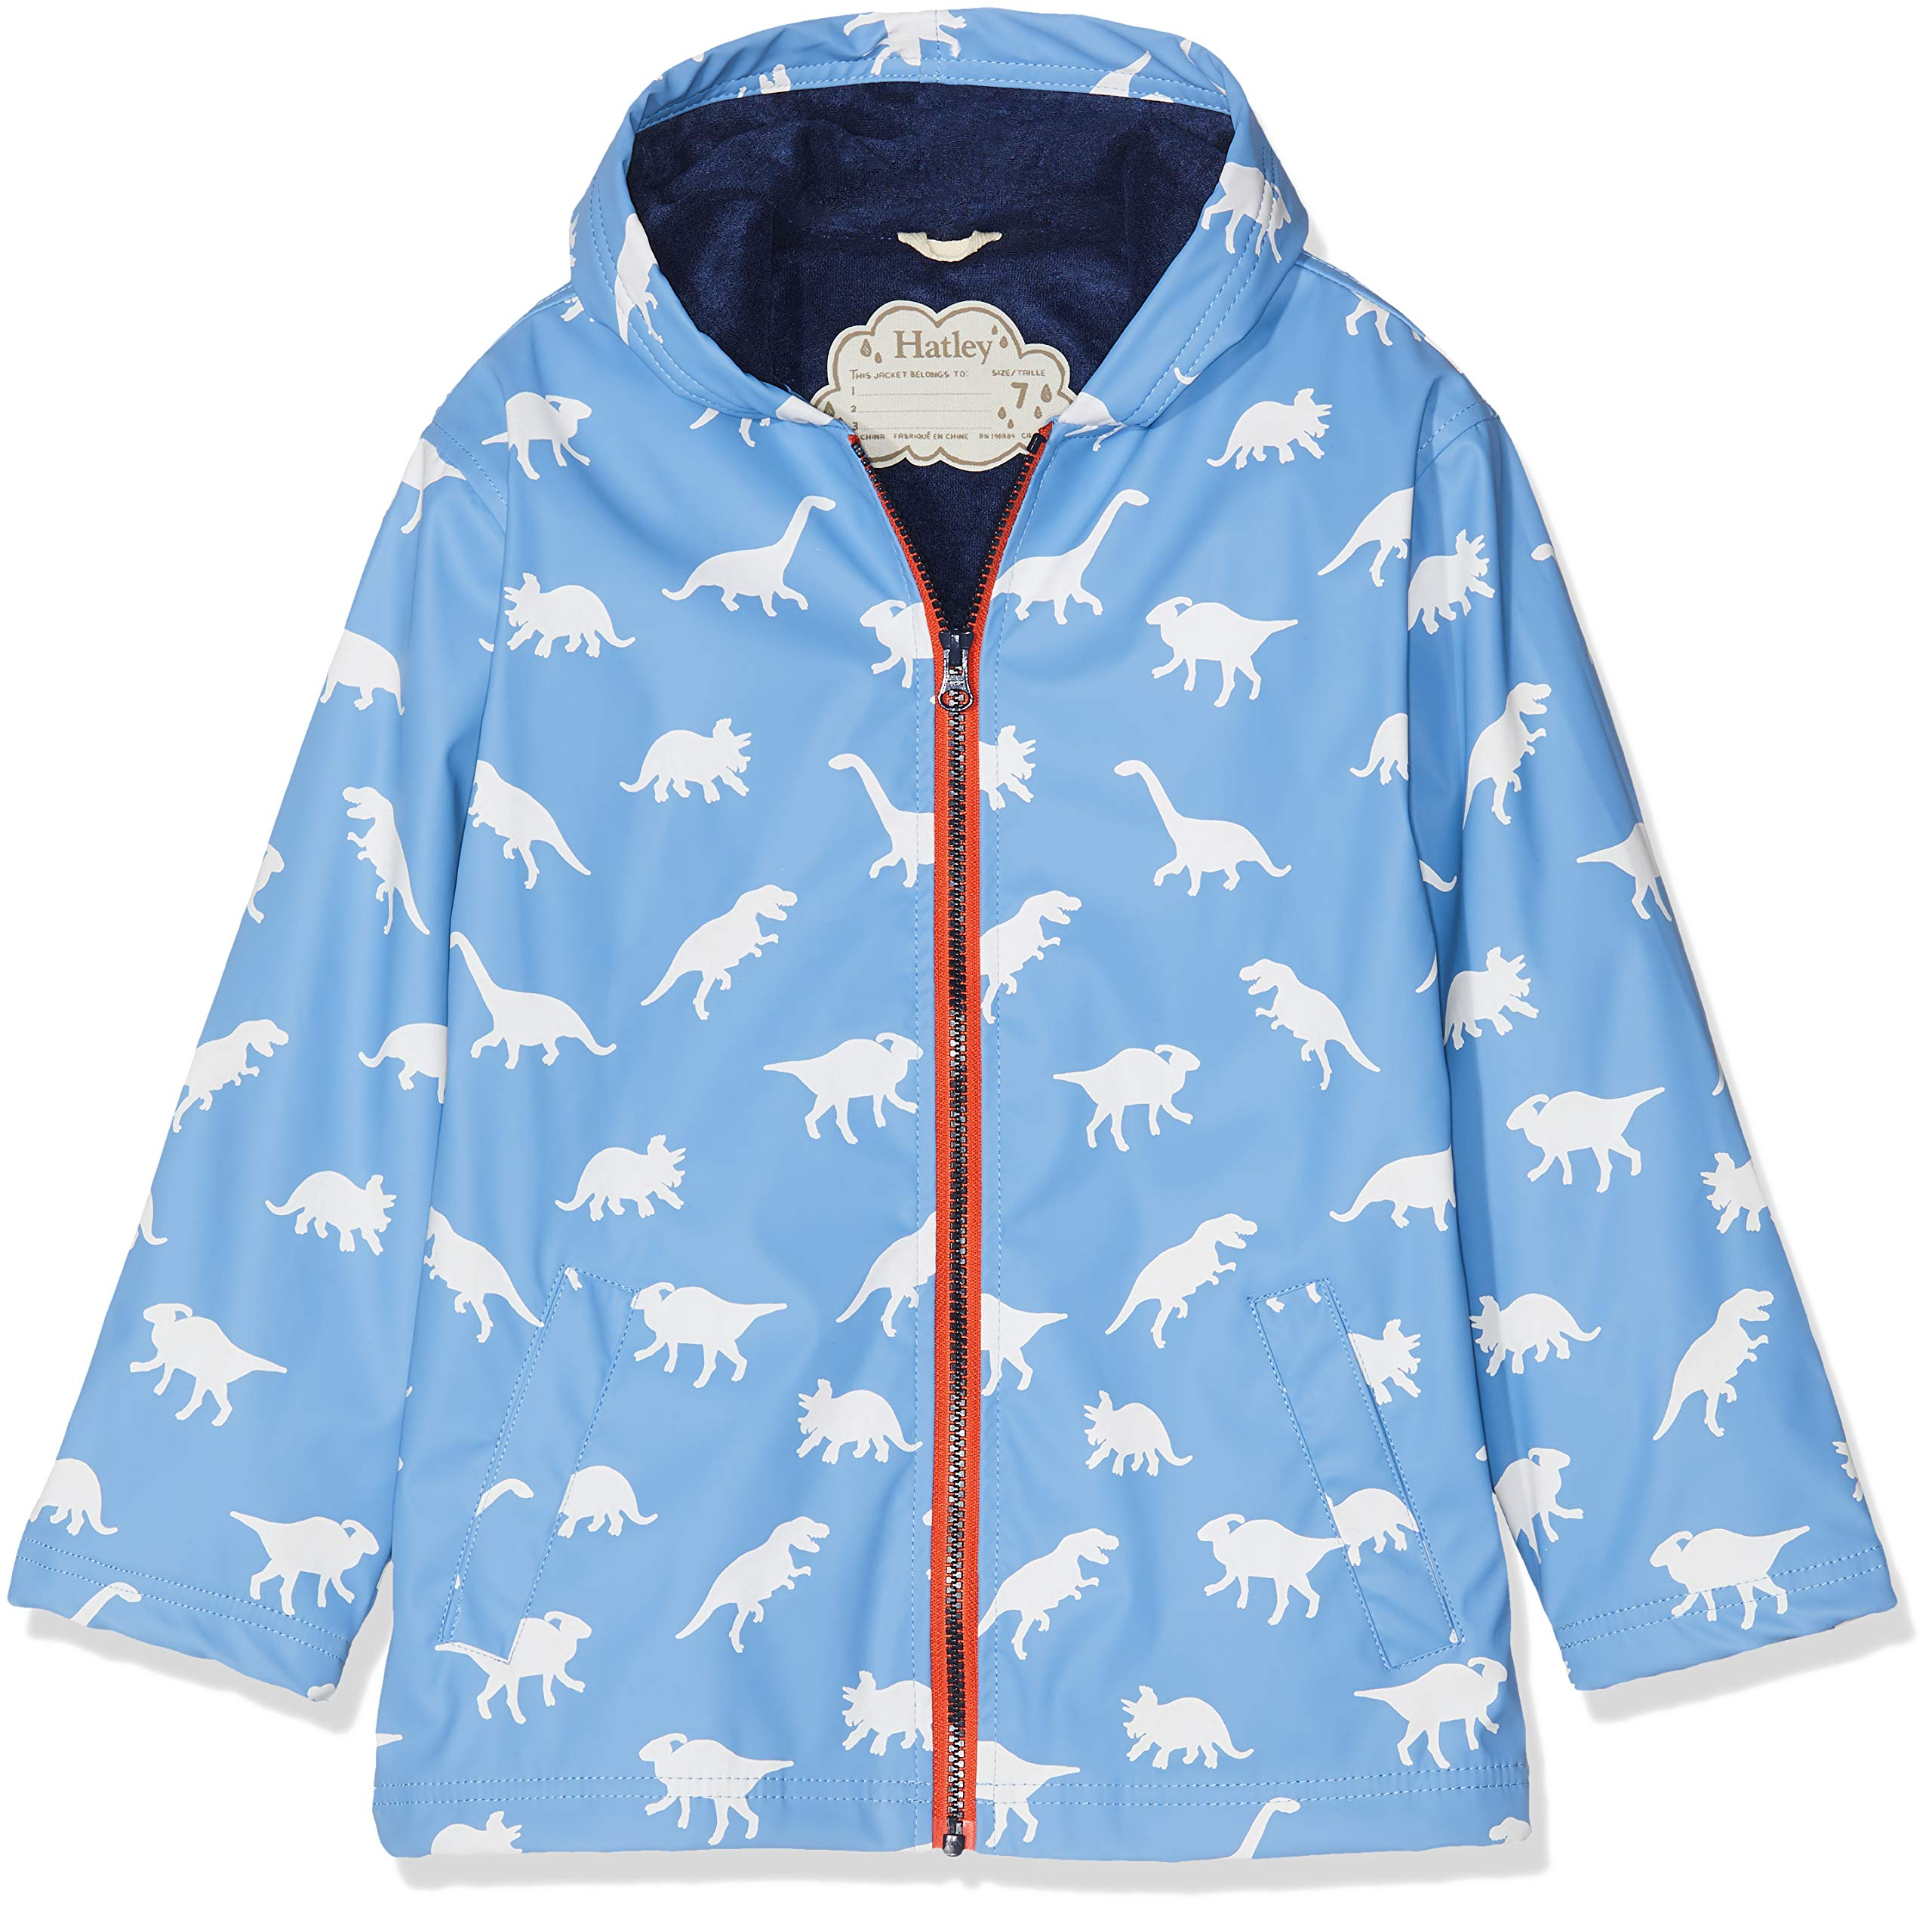 Hatley Boys' Big Splash Jacket, Color Changing Silhouette Dinos 7 Years by Hatley (Image #1)